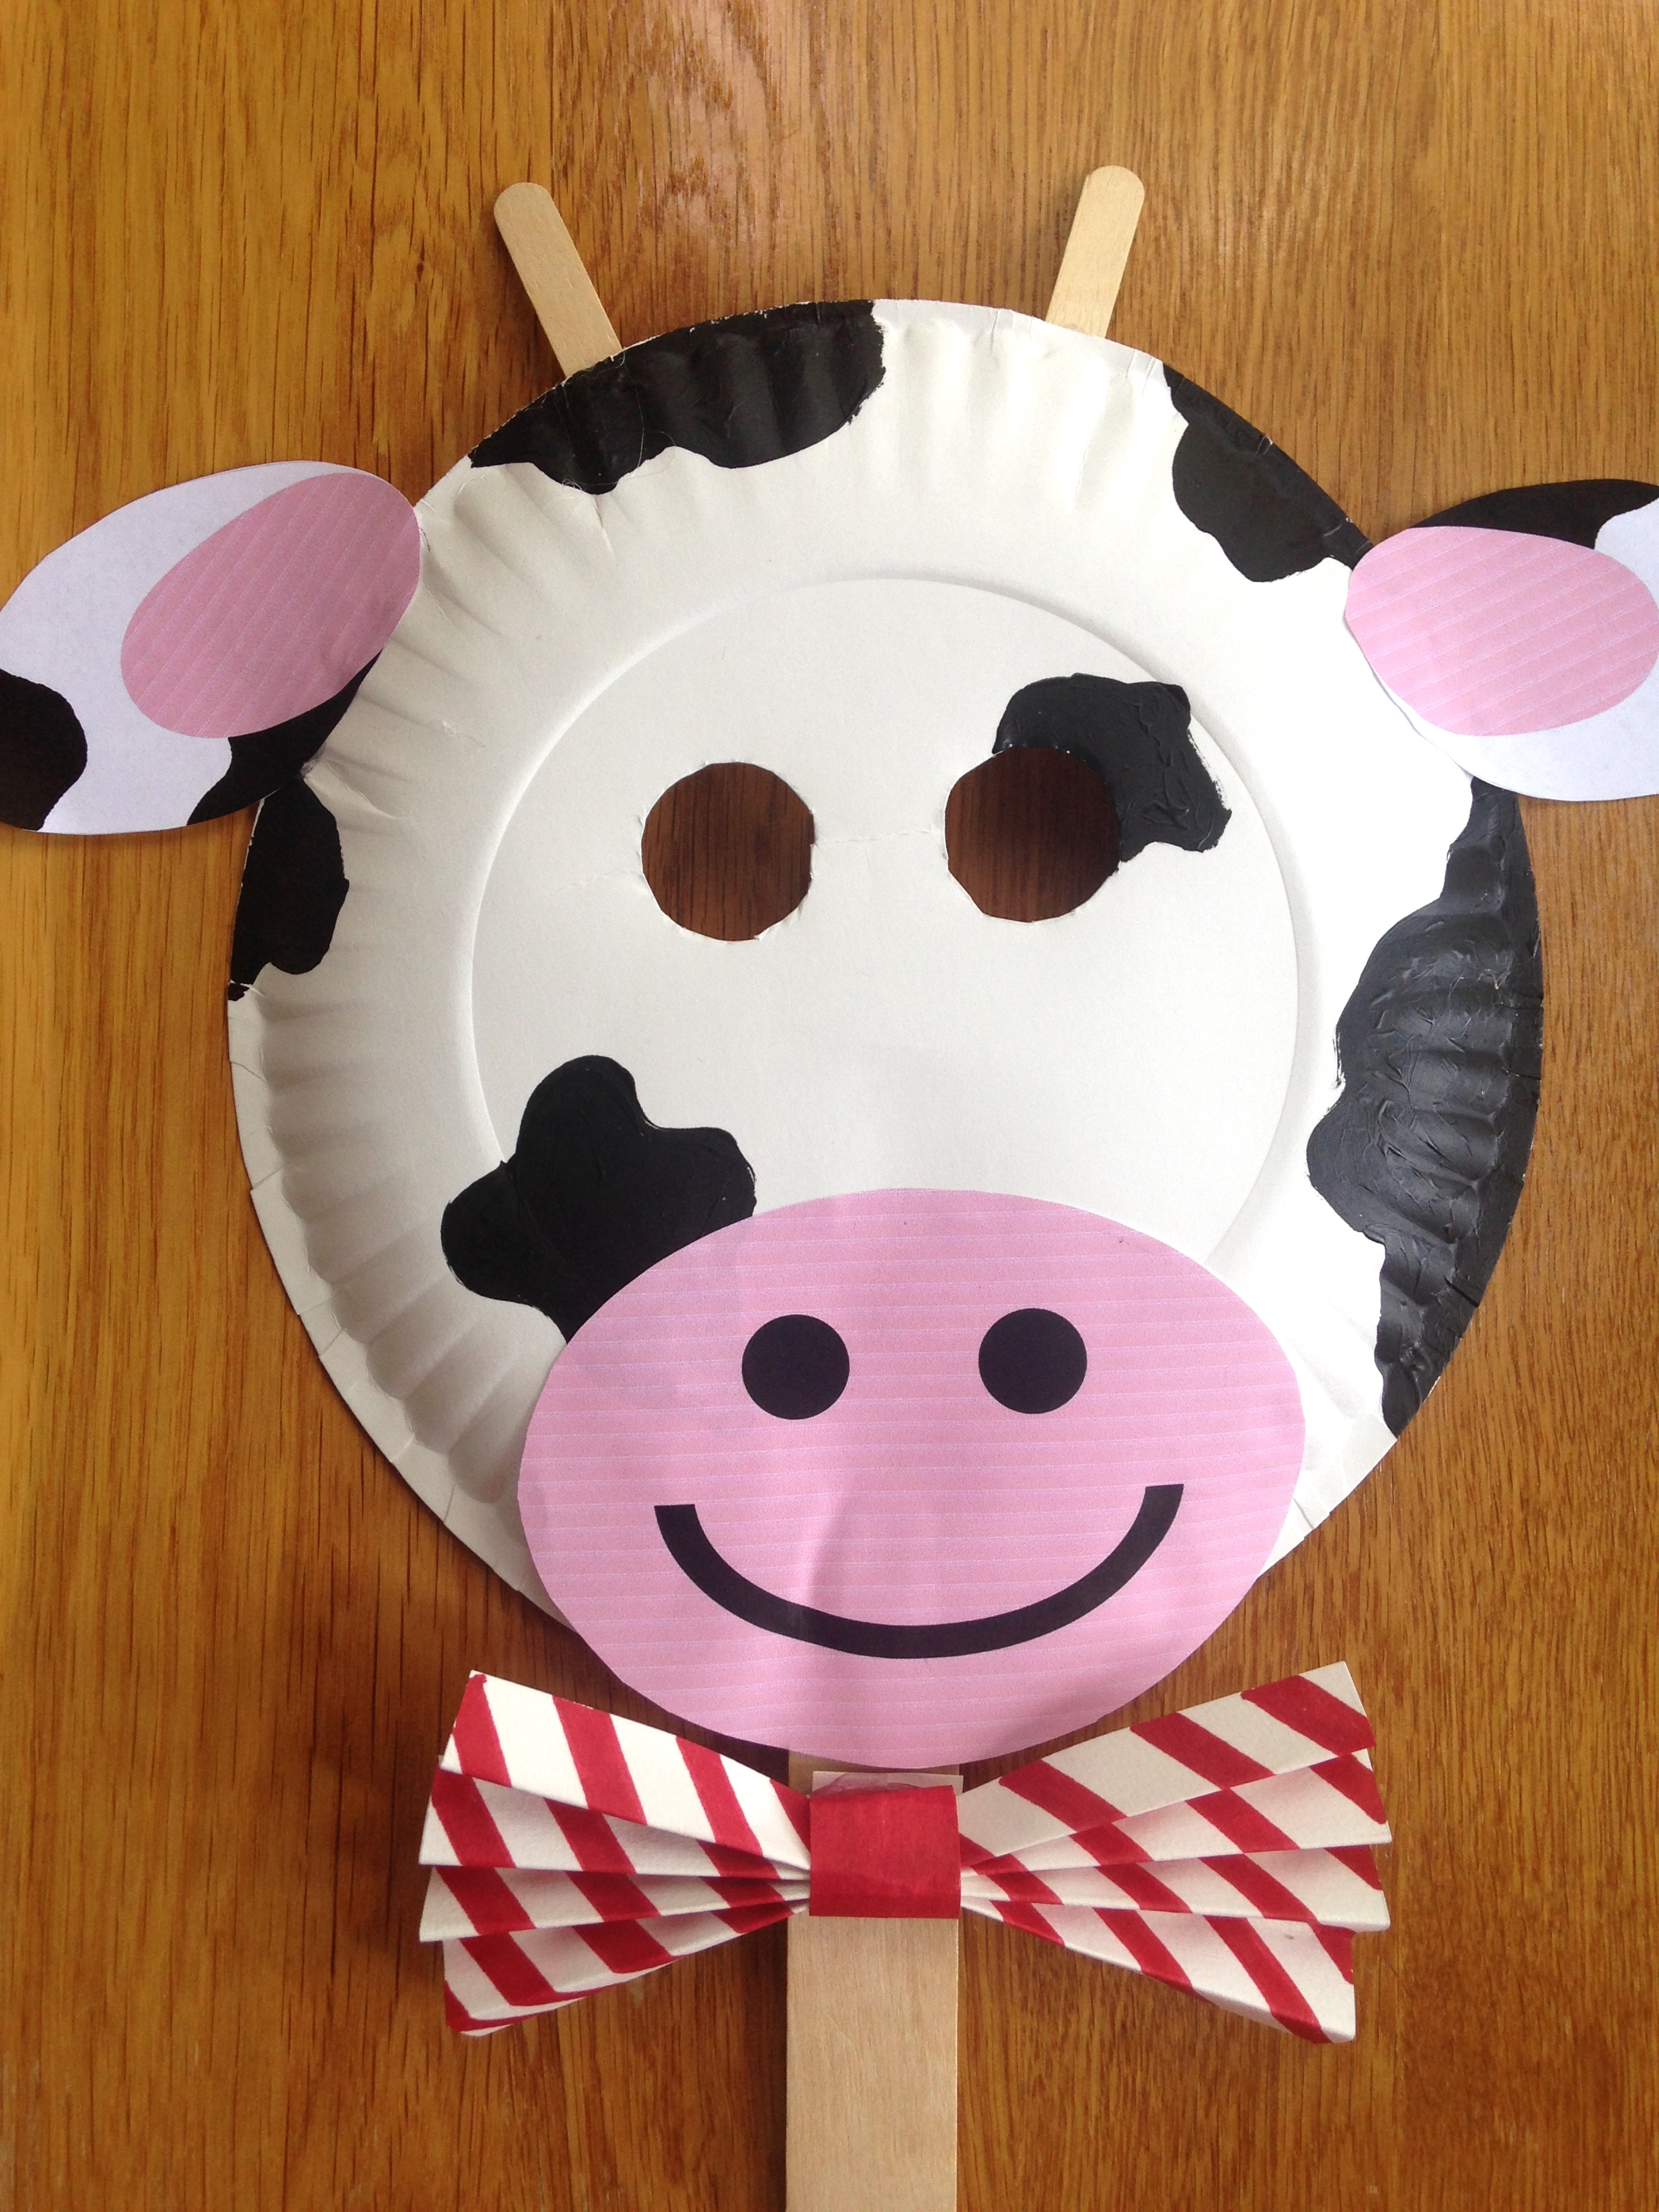 picture about Printable Chick Fil a Cow Costume identify Chick-fil-A Cow Working day Paper Plate Cow Masks With Free of charge